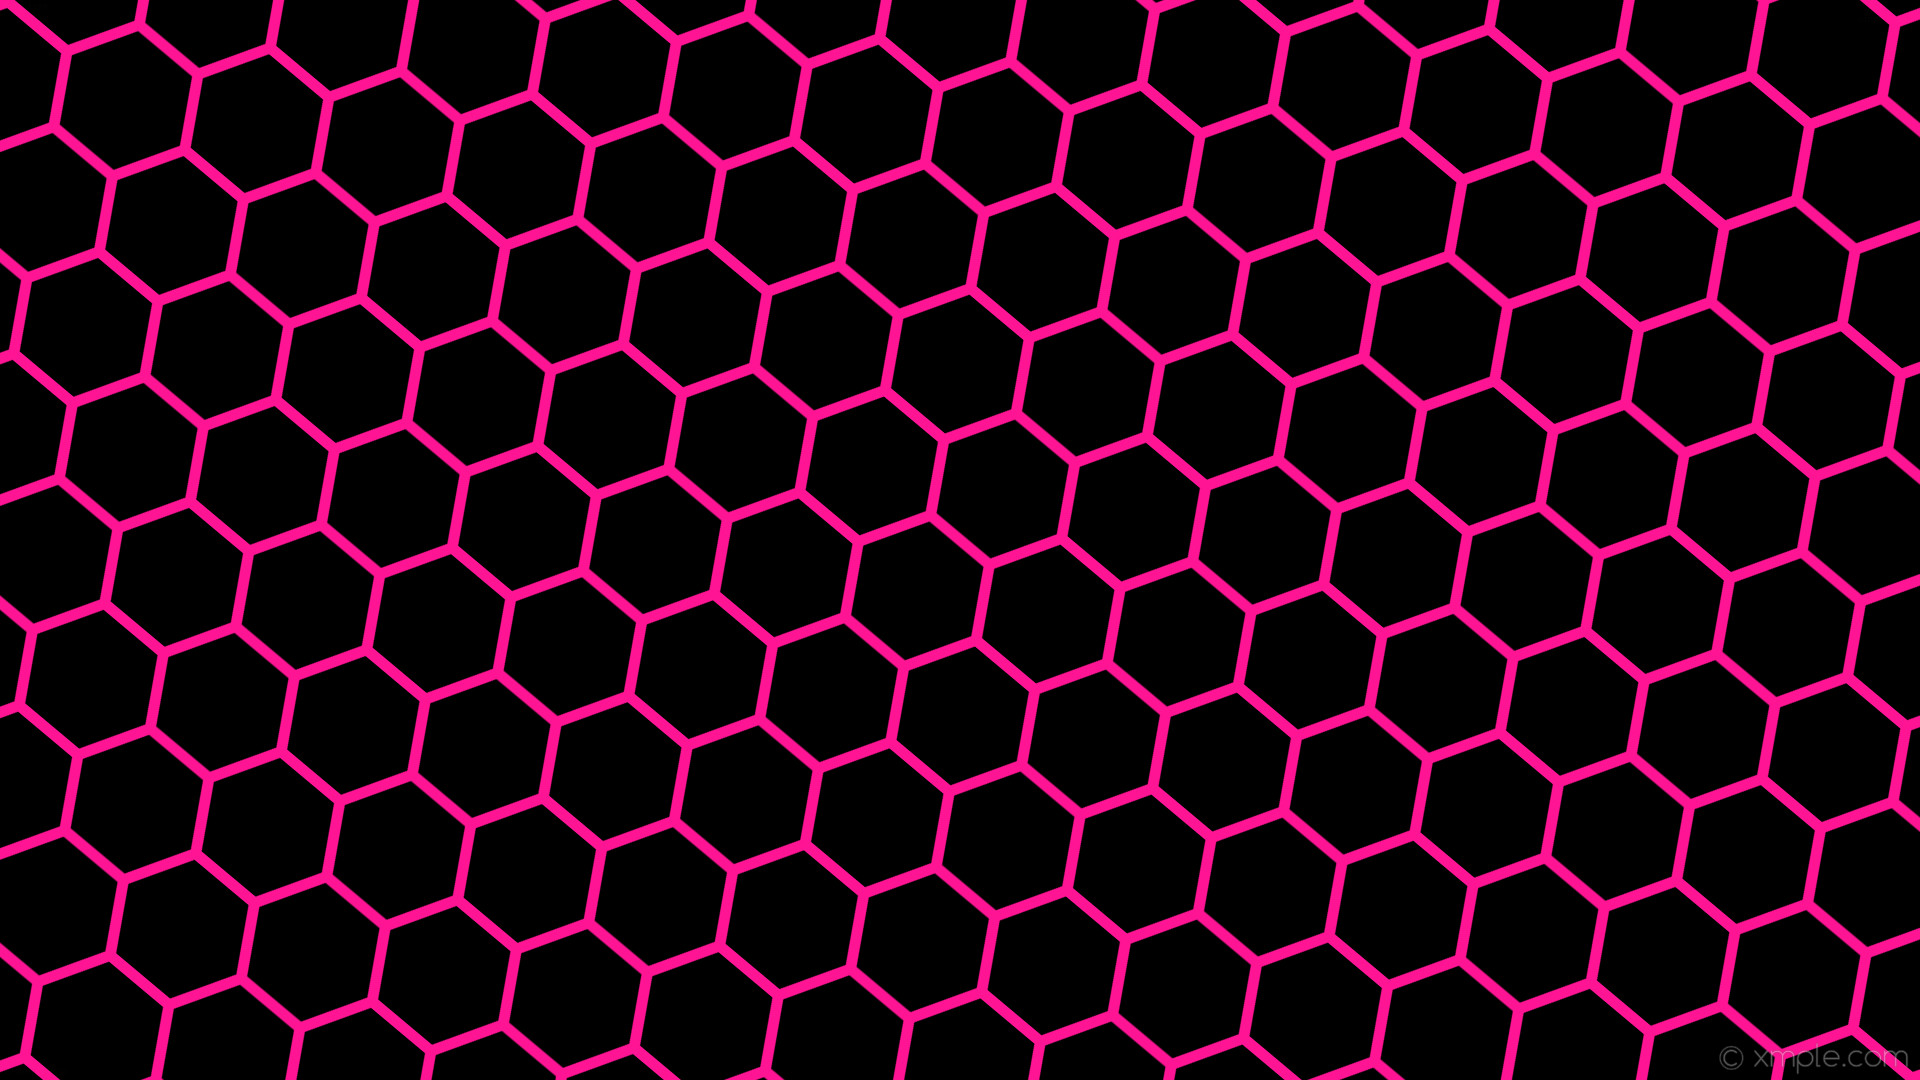 Res: 1920x1080, wallpaper beehive black honeycomb hexagon pink deep pink #000000 #ff1493  diagonal 50° 11px